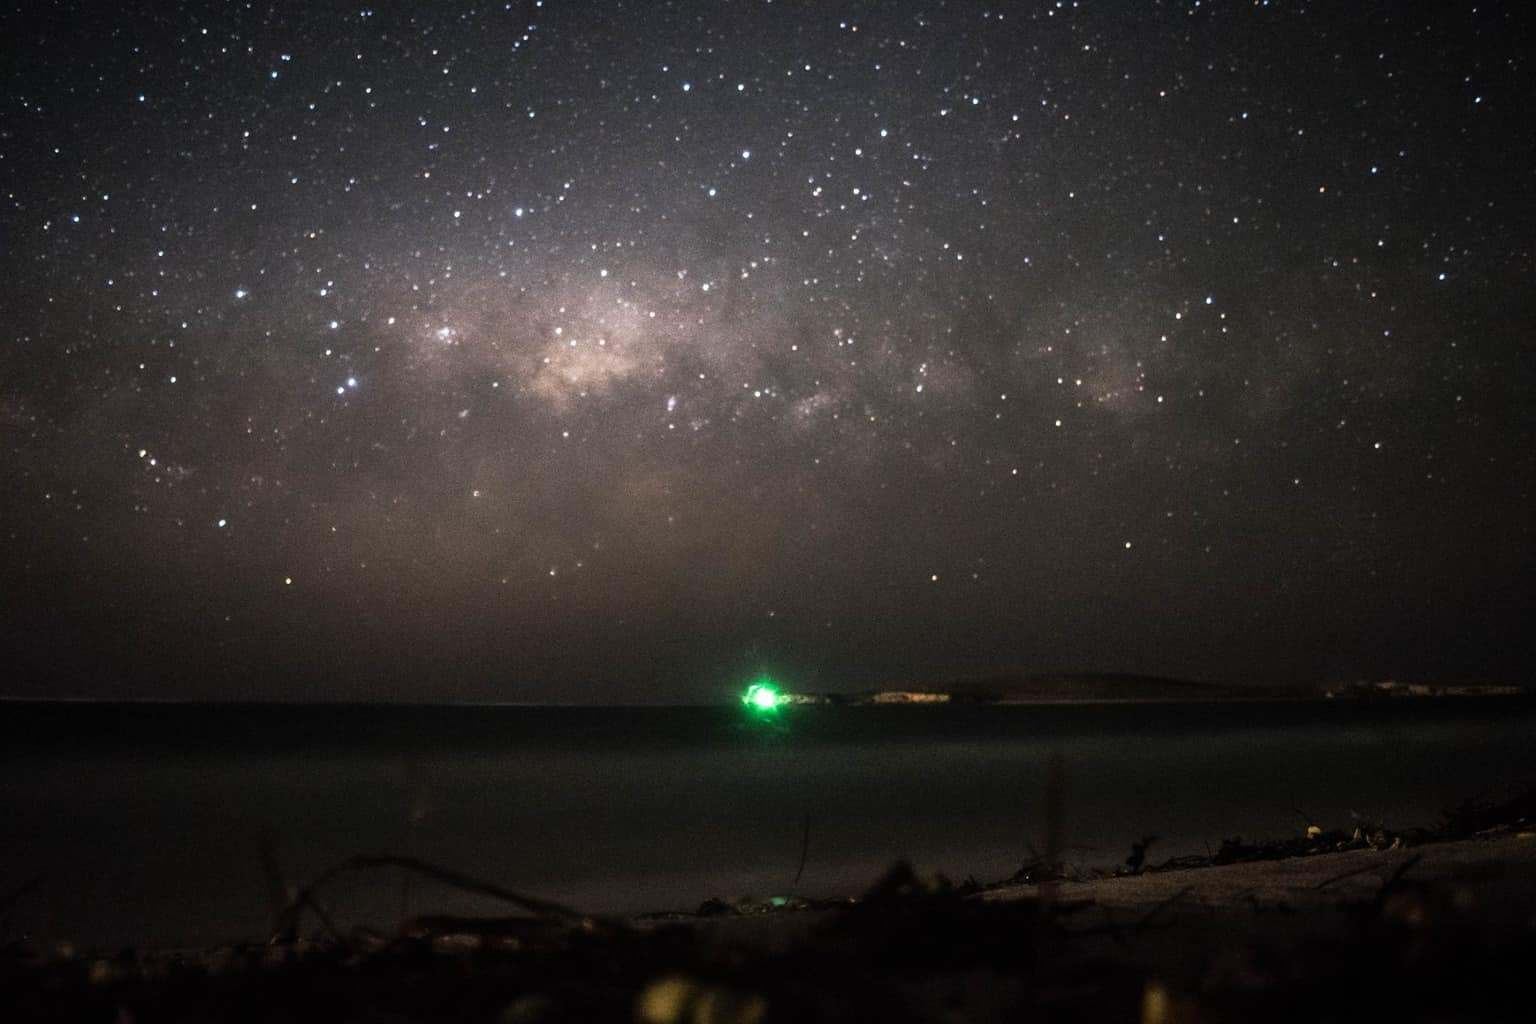 milkyway over the Indian ocean #westernaustralia